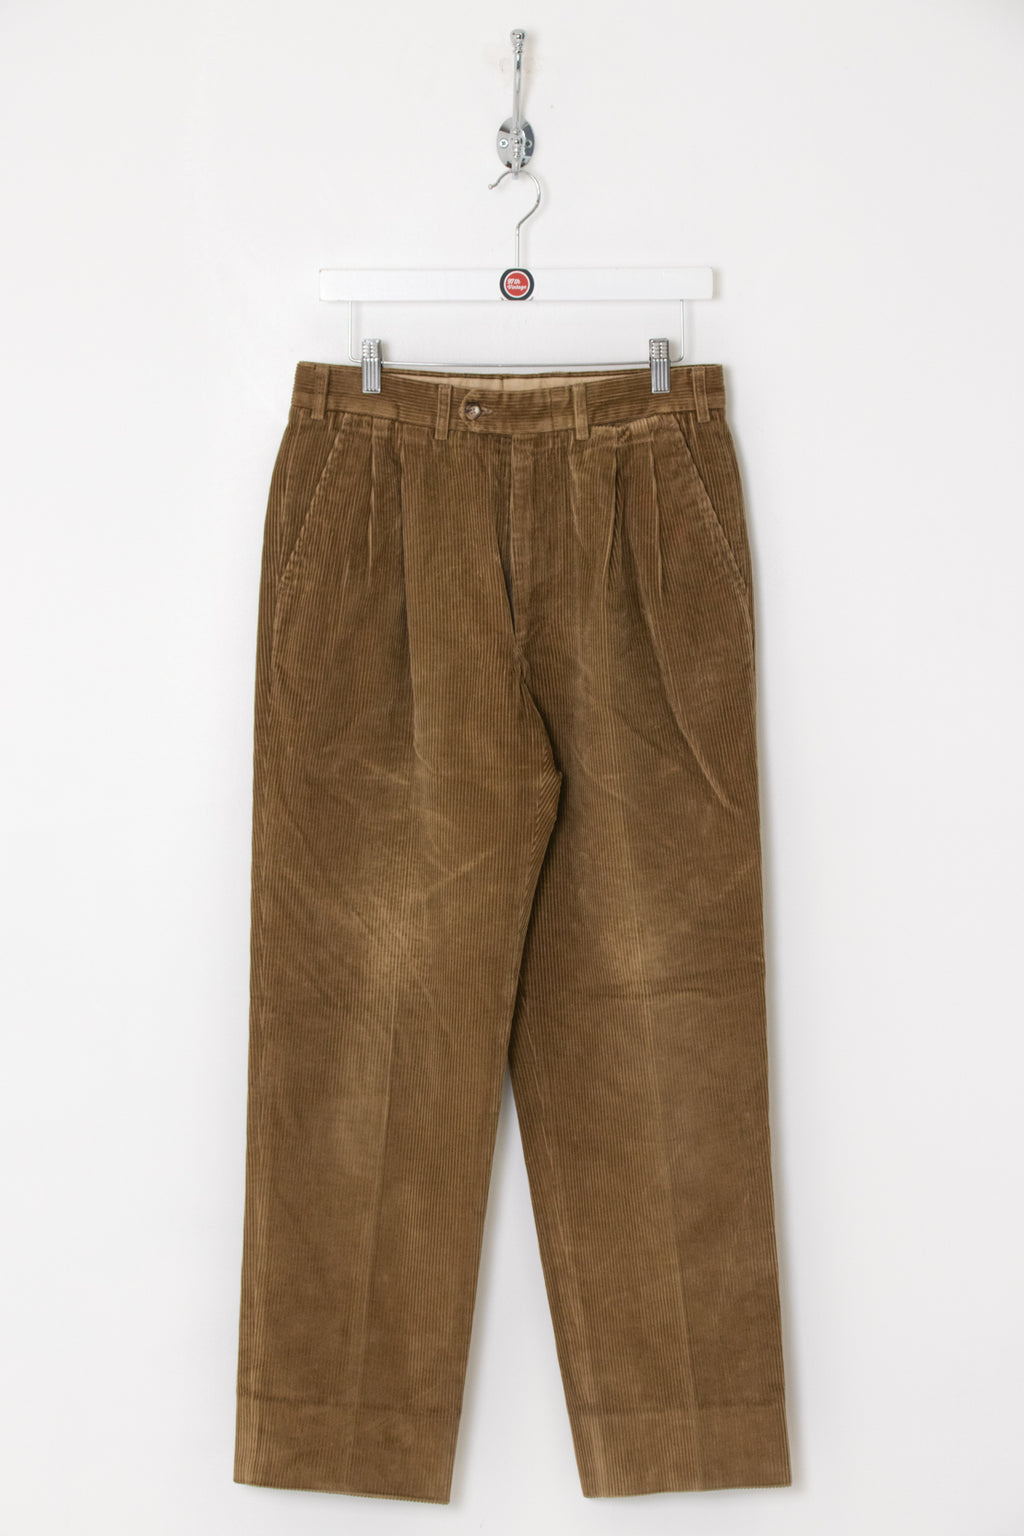 "Burberry Corduroy Trousers (30"")"